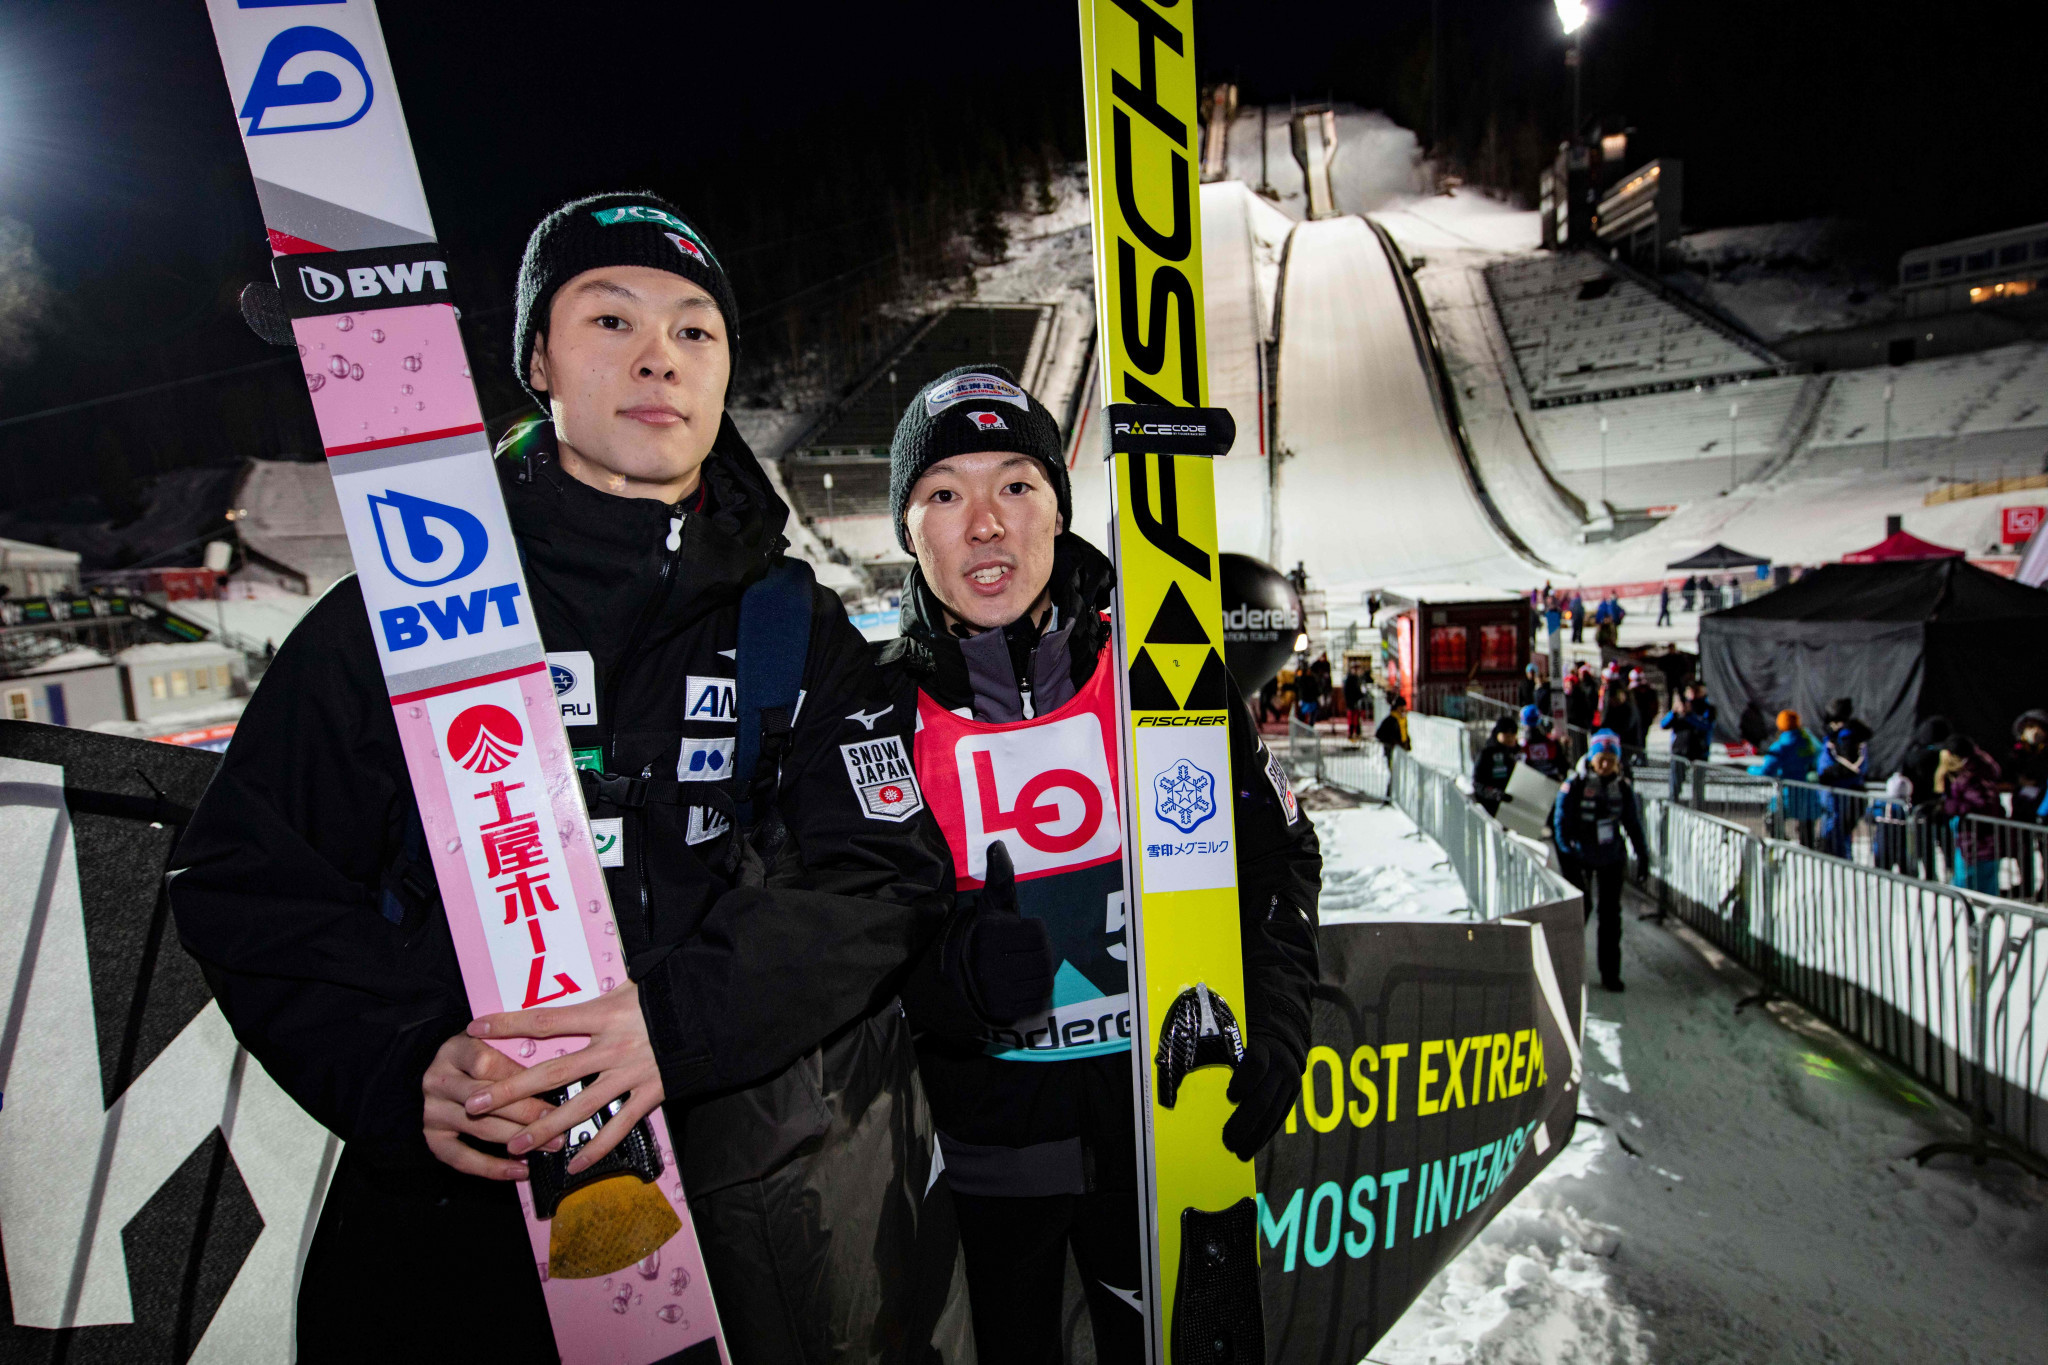 Japan's Kobayashi brothers occupied the top two spots in qualifying as the International Ski Federation Ski Jumping World Cup continued with the latest leg of the Raw Air Tournament in Lillehammer ©Getty Images